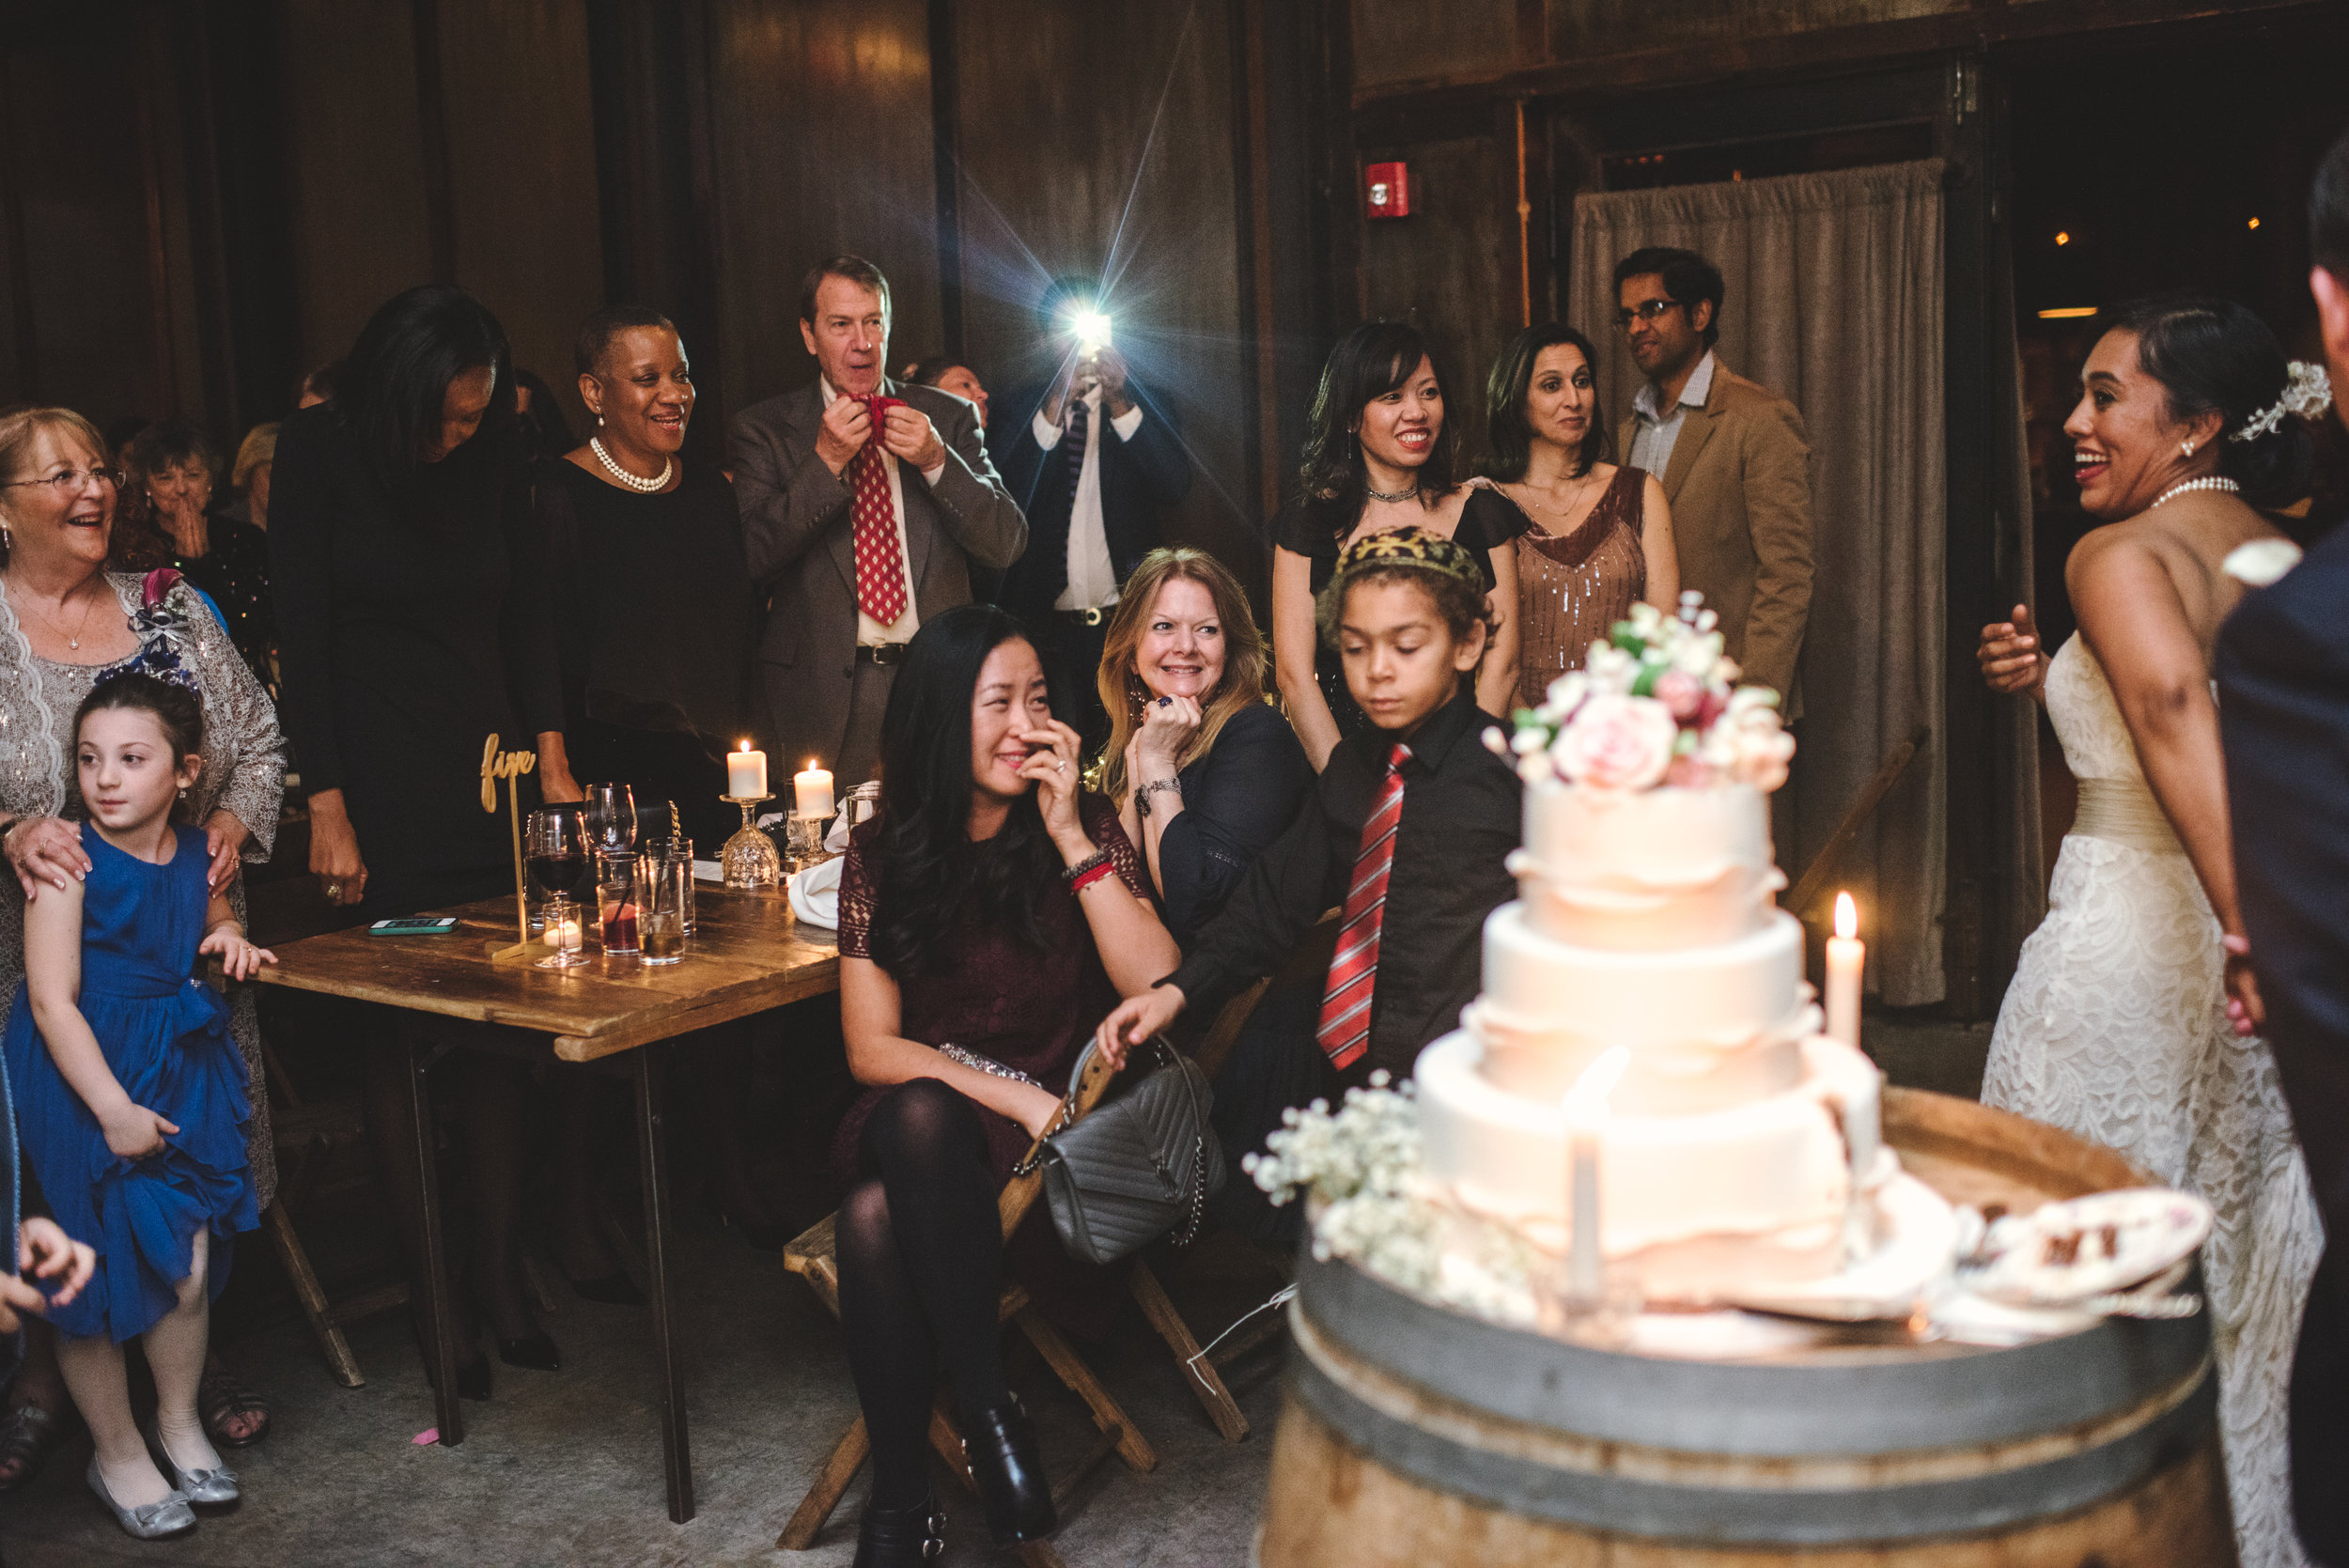 BROOKLYN WINERY WEDDING - TWOTWENTY by CHI-CHI AGBIM-426.jpg